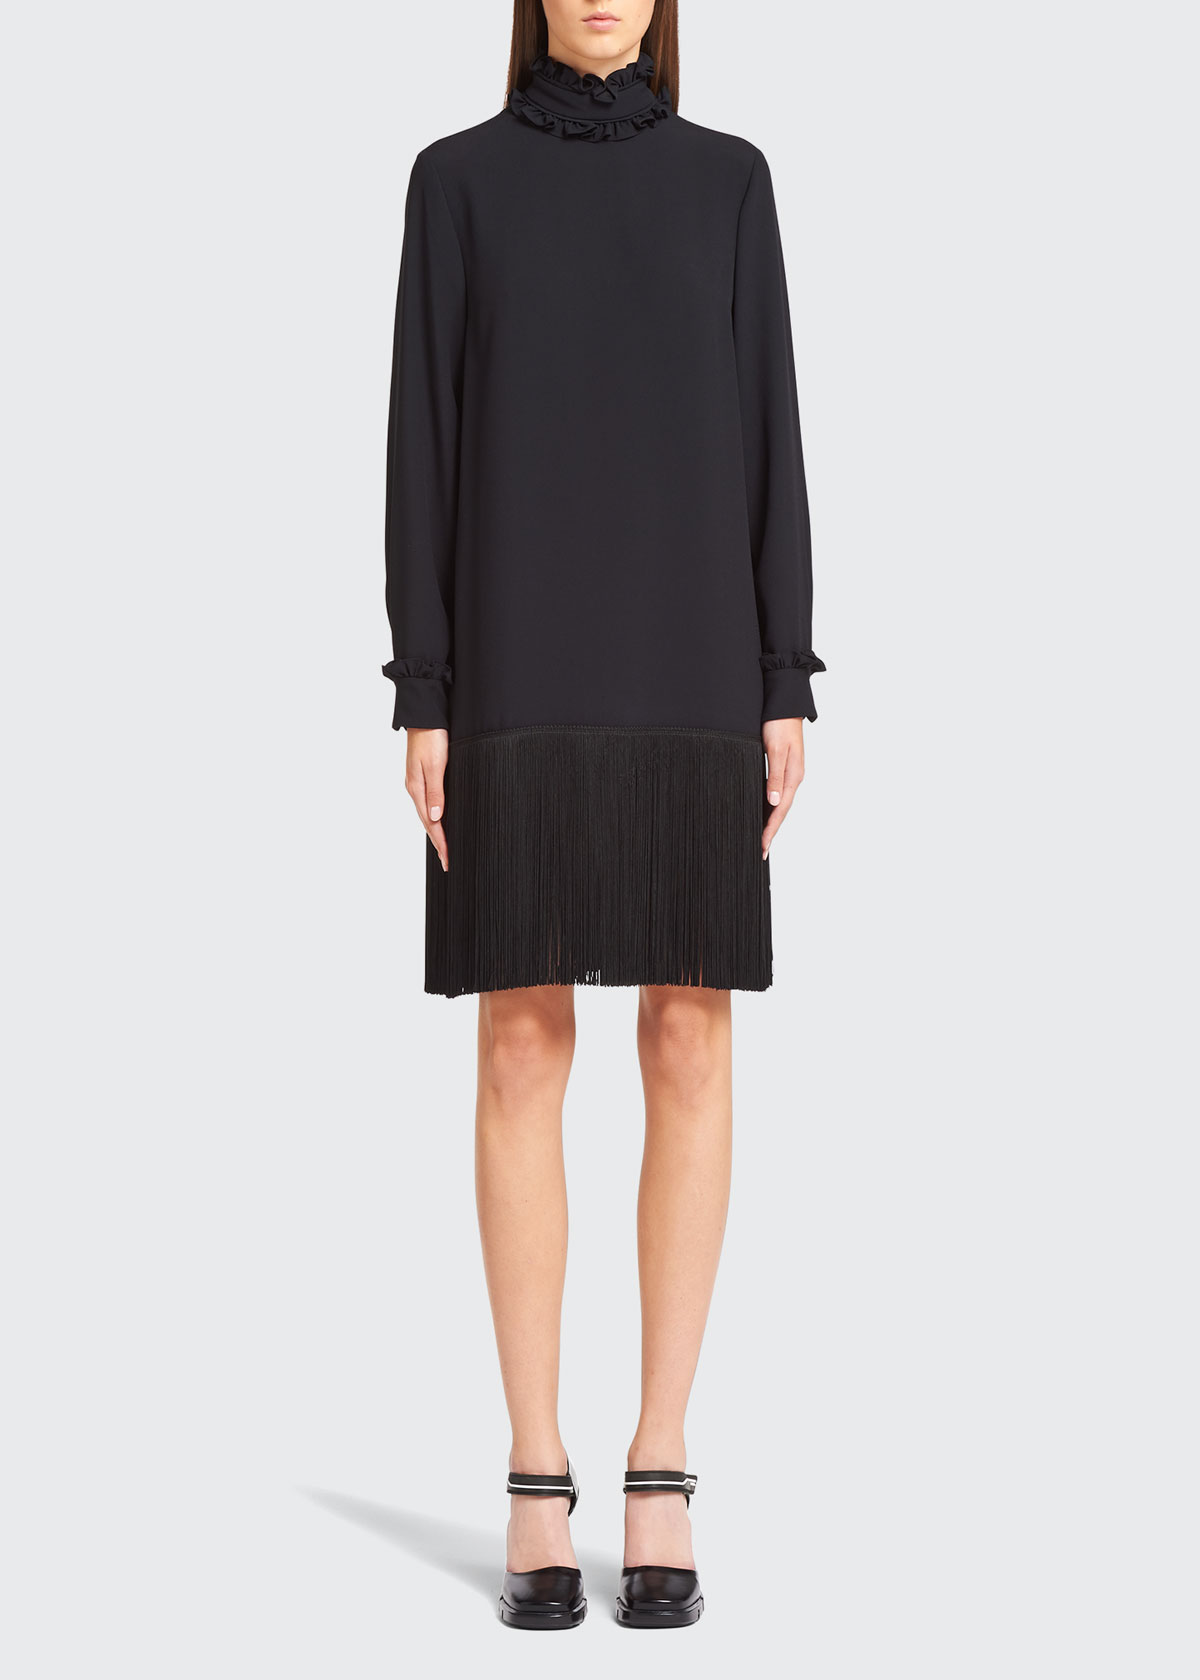 Prada Dresses HIGH-NECK FRINGE DRESS